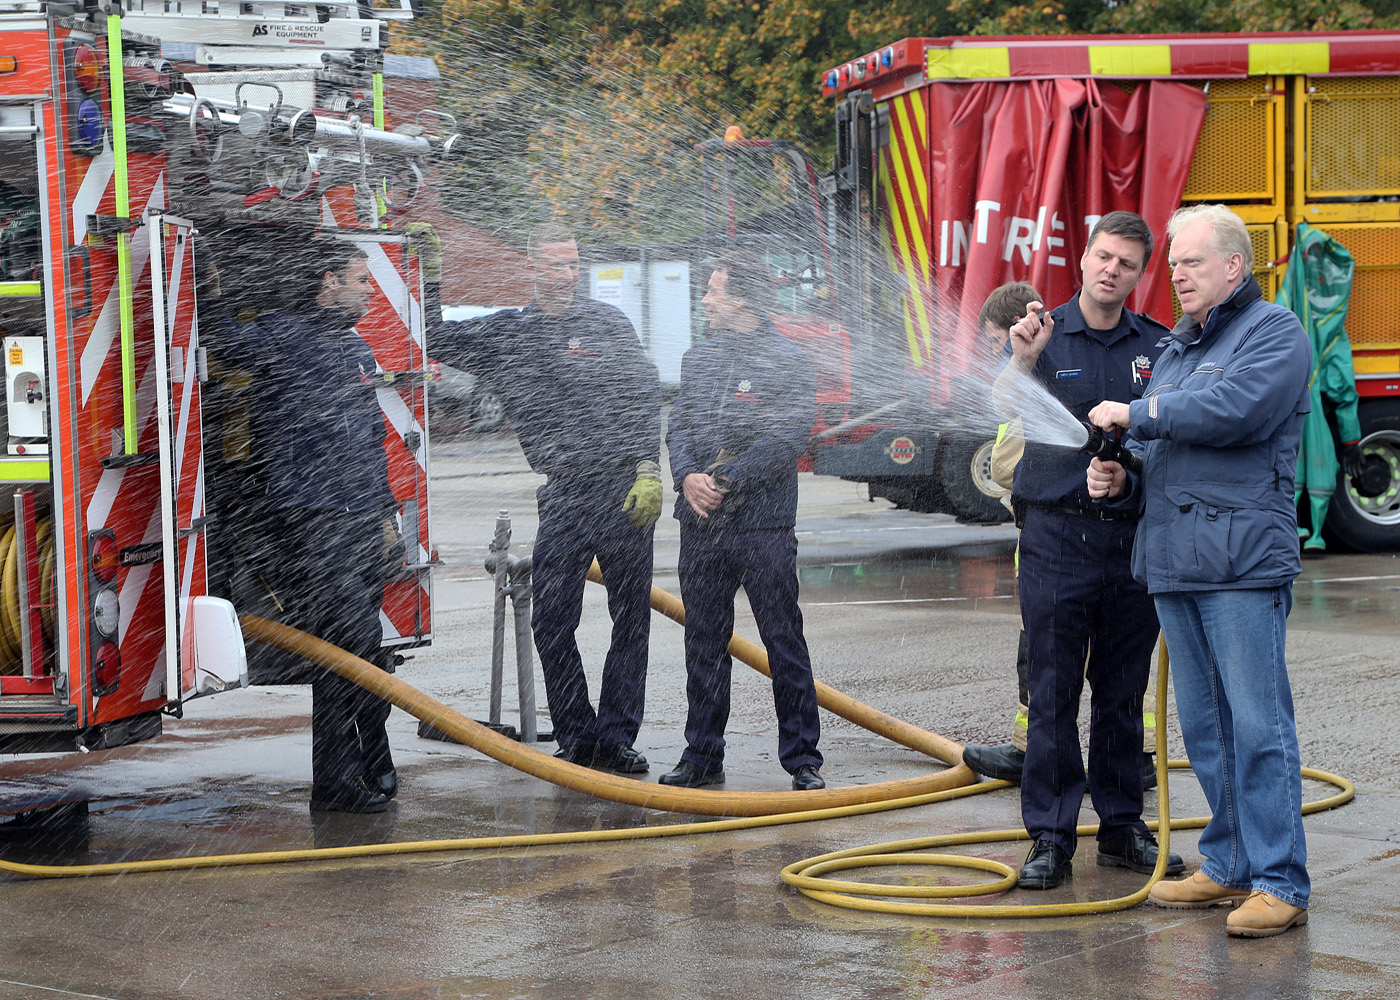 Crew Manager Simon Morris shows a visitor how to operate a fire hose.